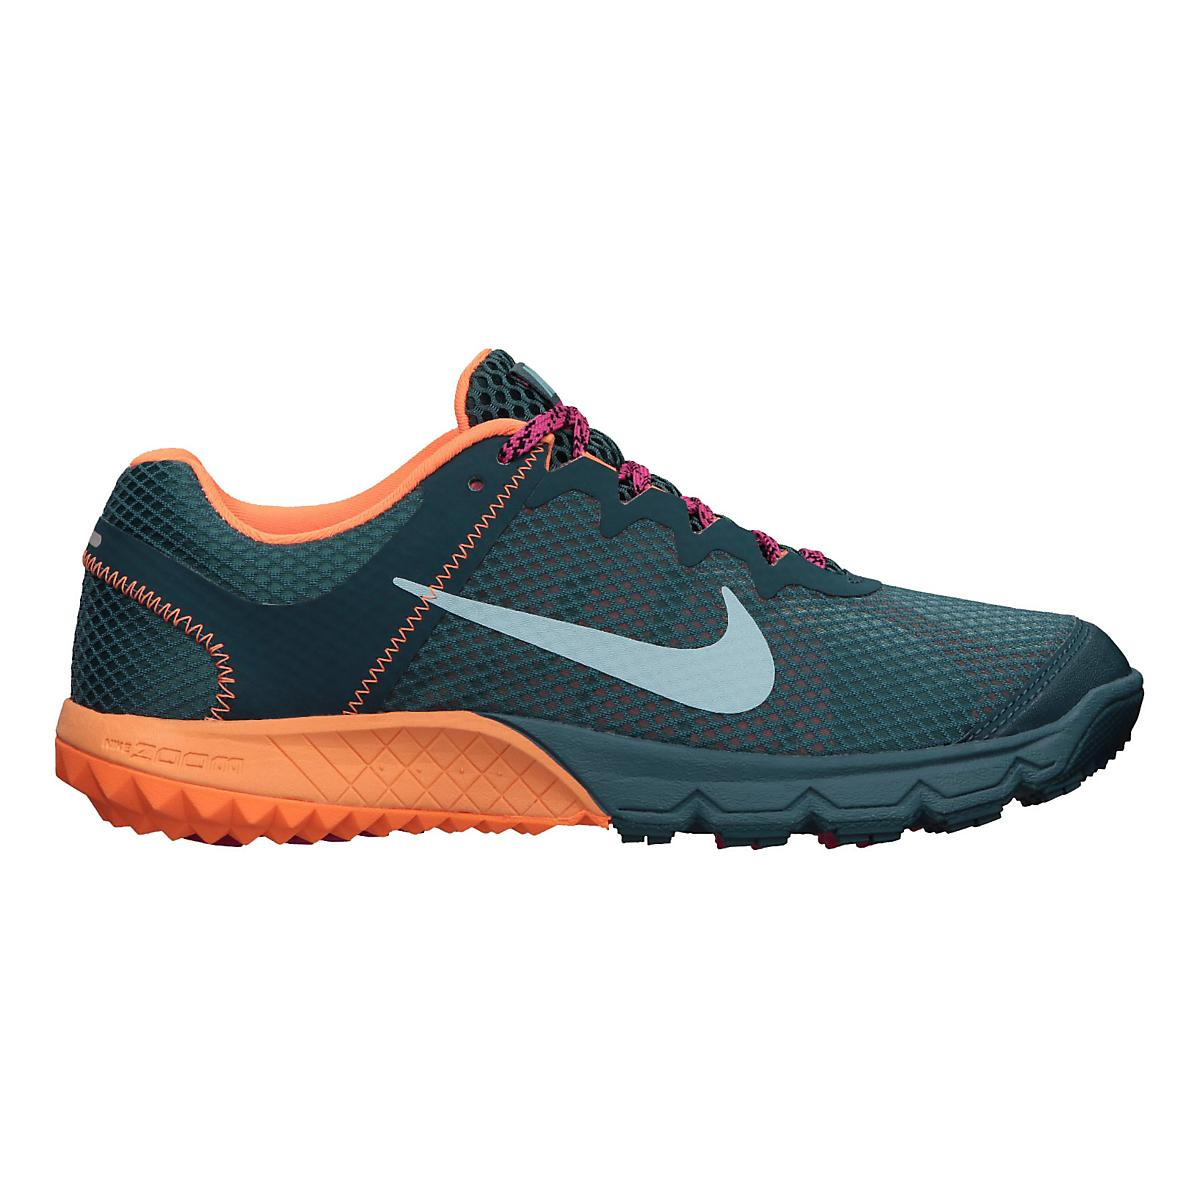 uk availability ef7fe e8c8f ... shop womens nike zoom terra wildhorse trail running shoe at road runner  sports a49f4 a8c99